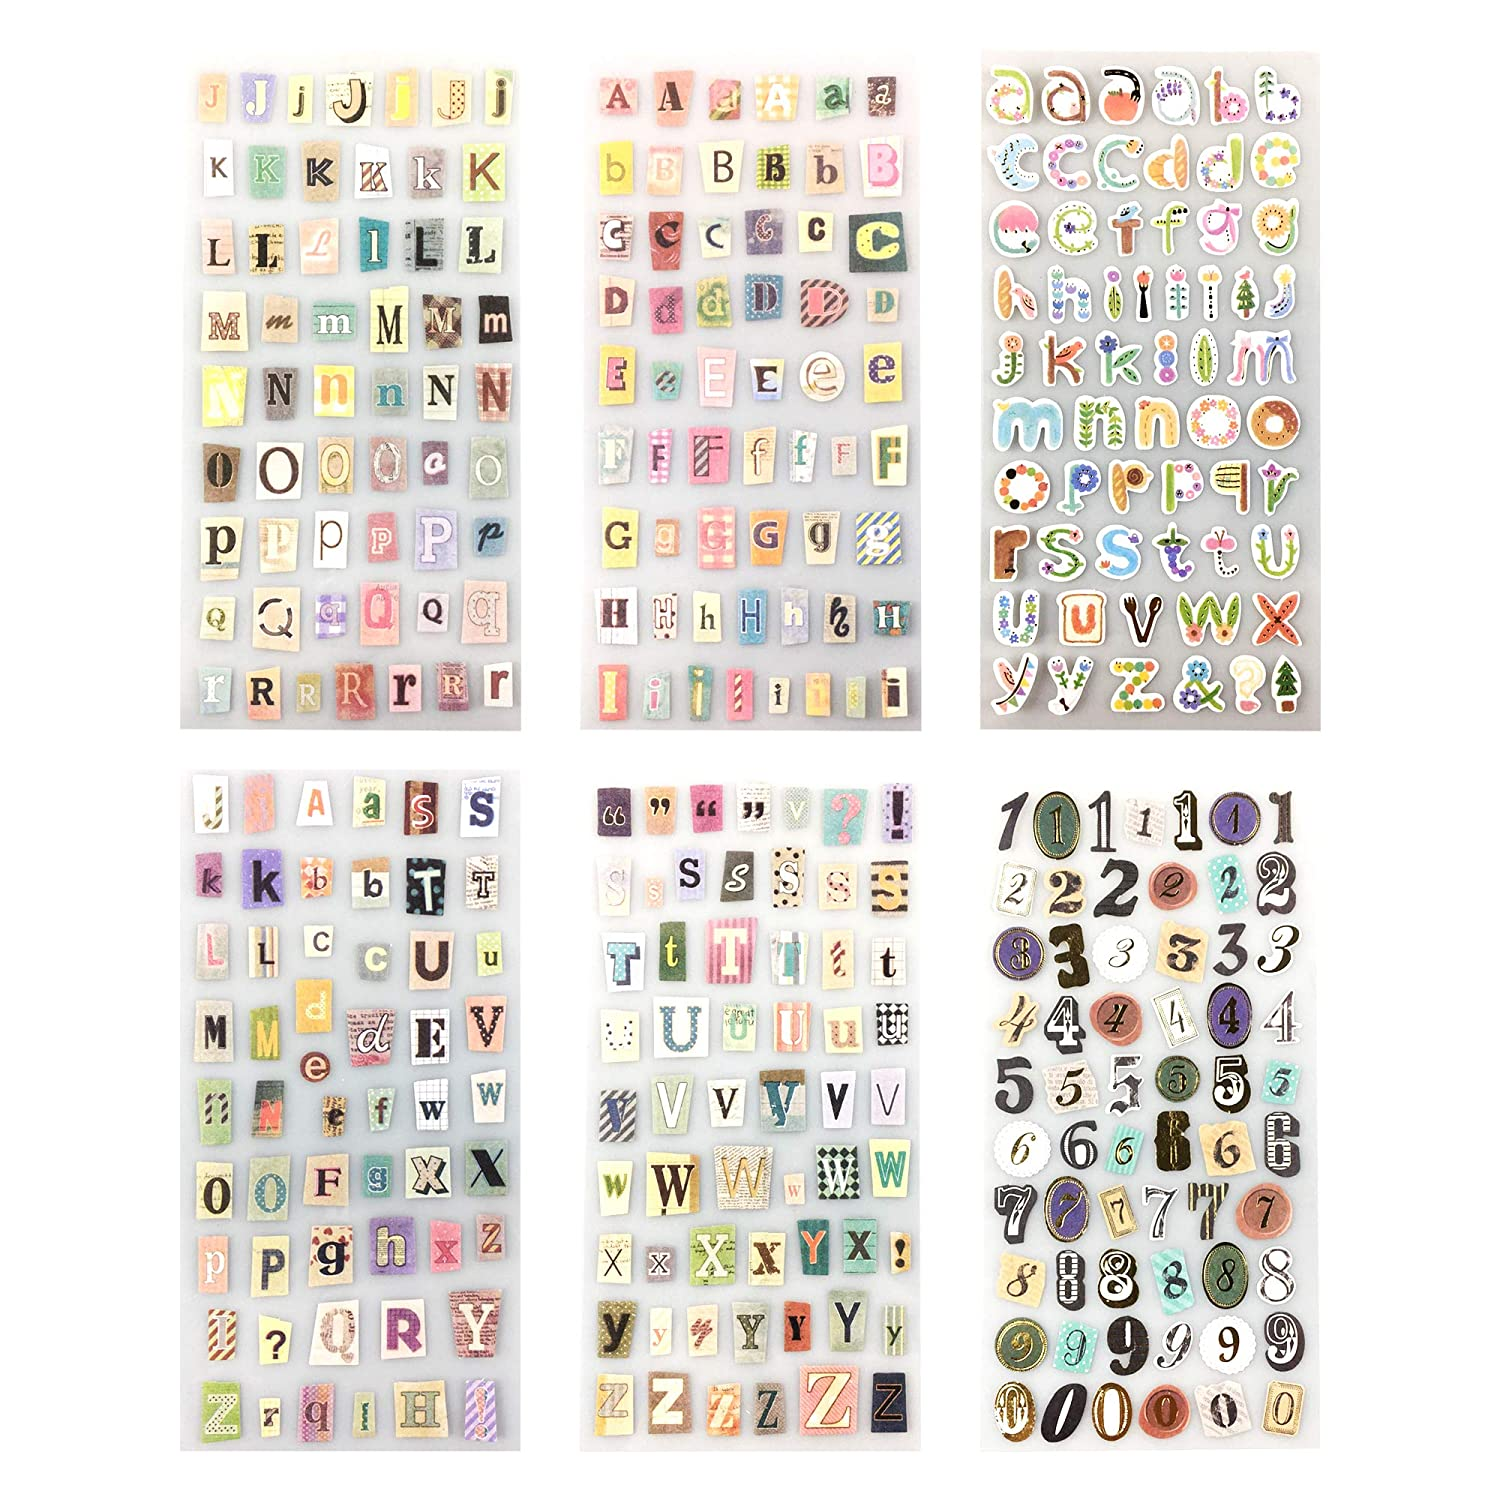 14 Sheets Letter and Numbers Sticker Colorful Gift Alphabet Sticker/for DIY Craft Greeting Card Scrap Books and Home Decor